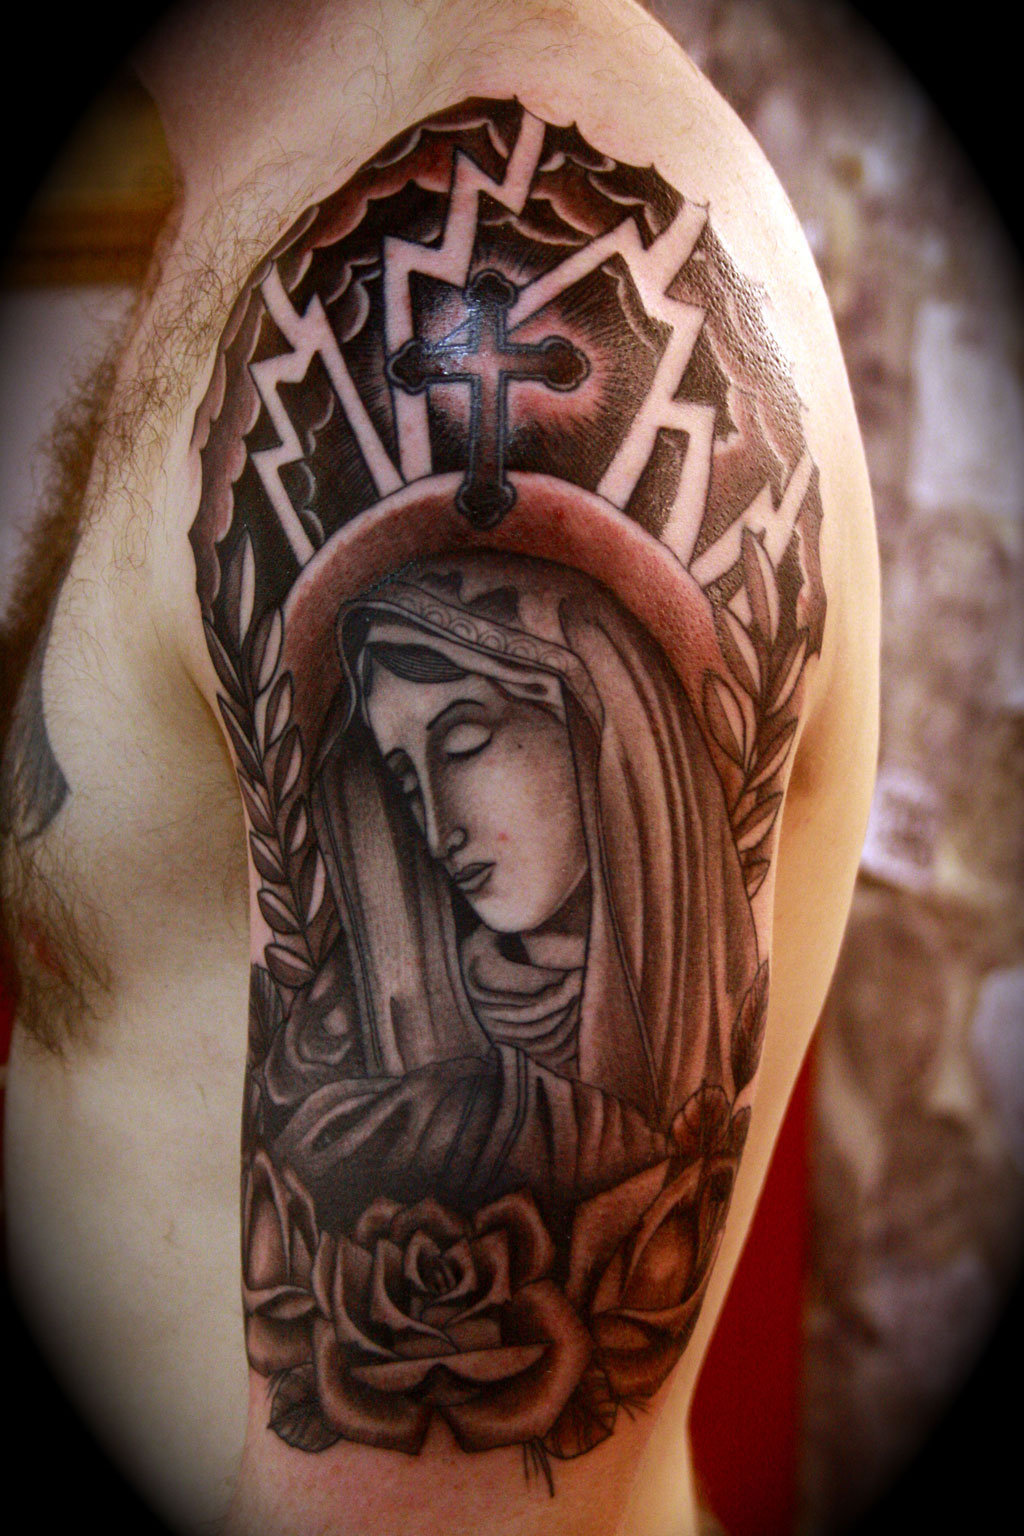 Christian tattoos for men designs ideas and meaning for Christians and tattoos